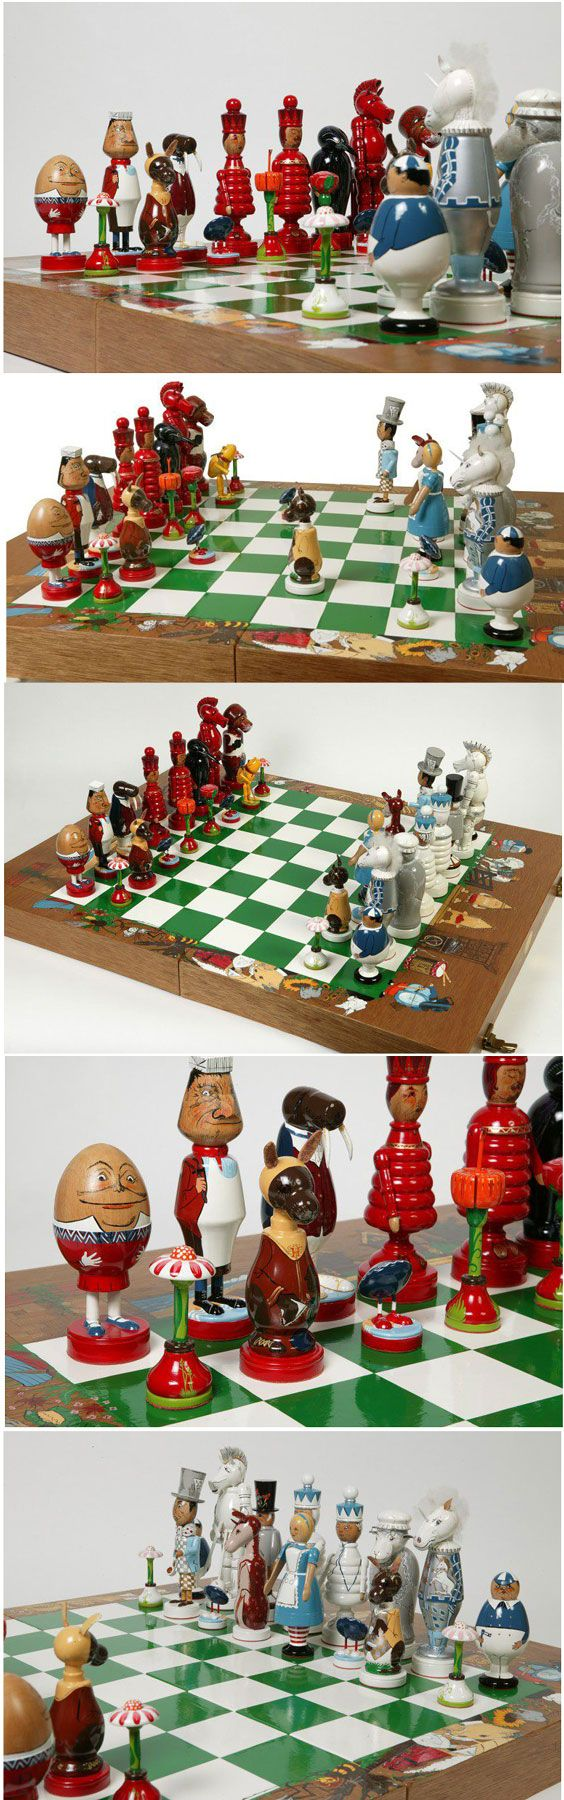 Alice Through the Looking Glass Chess Set. This is an unusual and finely made chess set with playing pieces based on the characters from the book Through the Looking Glass by Lewis Carroll. c.1983. Alice in Wonderland http://collections.vam.ac.uk/item/O26138/alice-through-the-looking-glass-board-game-dale-nell/